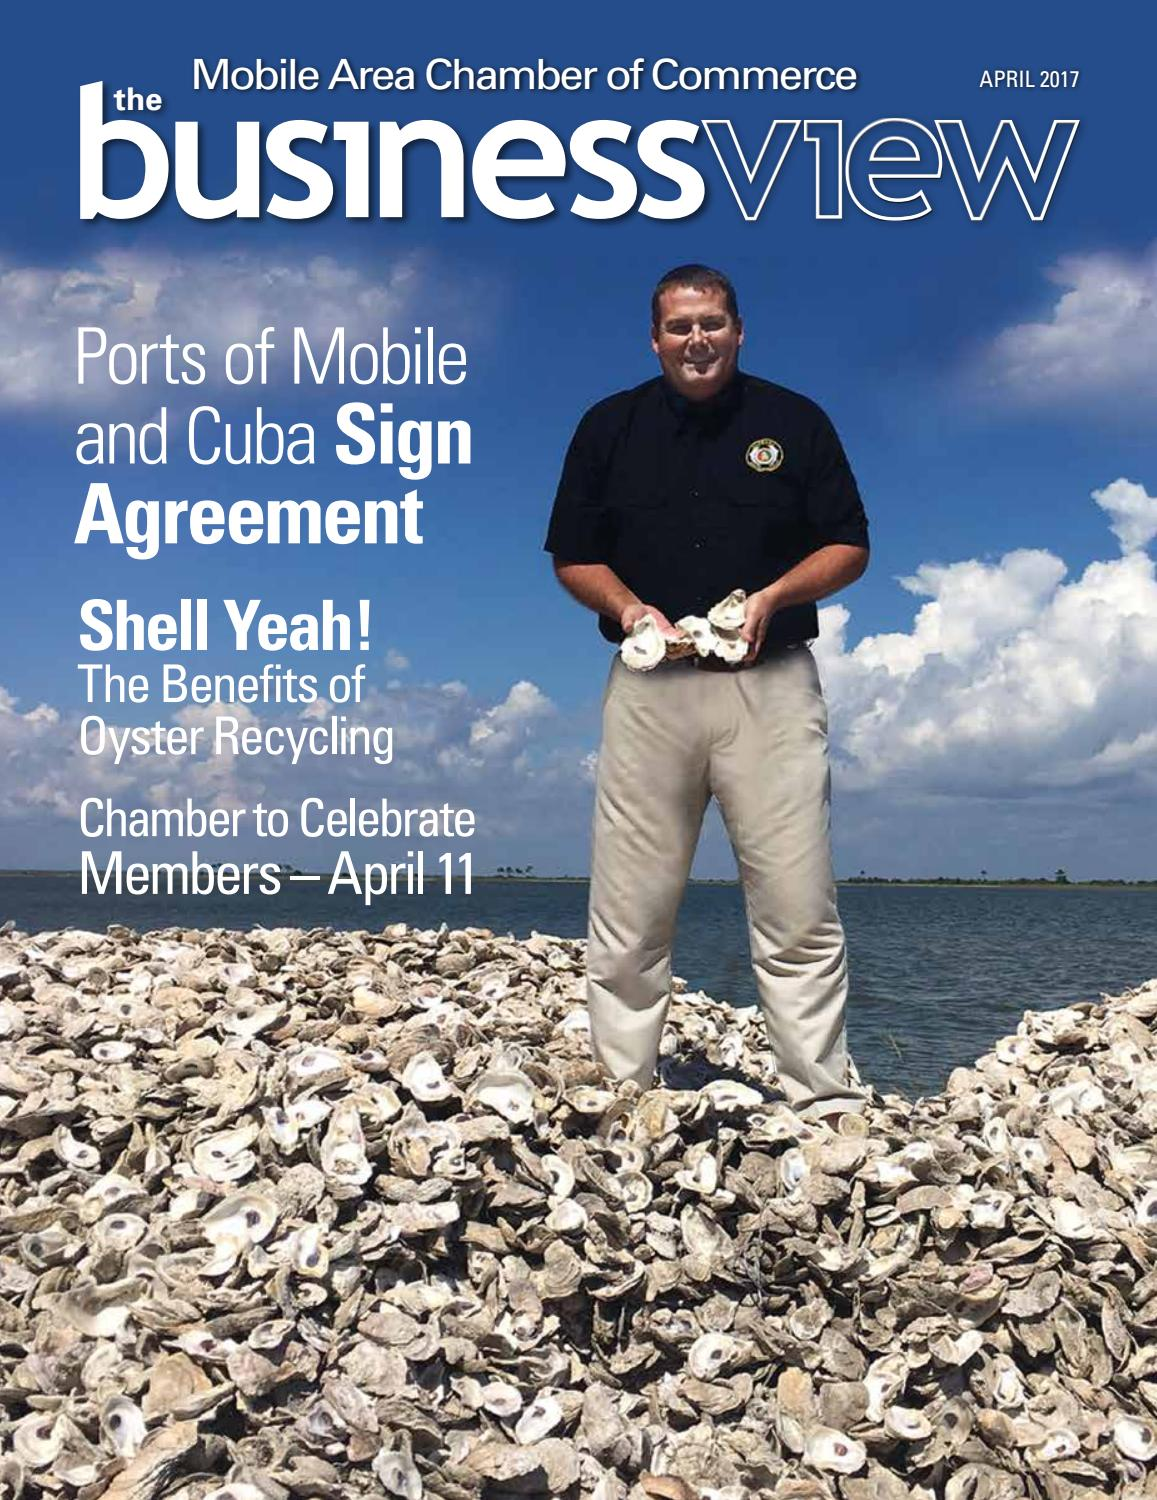 The Business View - April 2017 by Mobile Area Chamber of Commerce - issuu